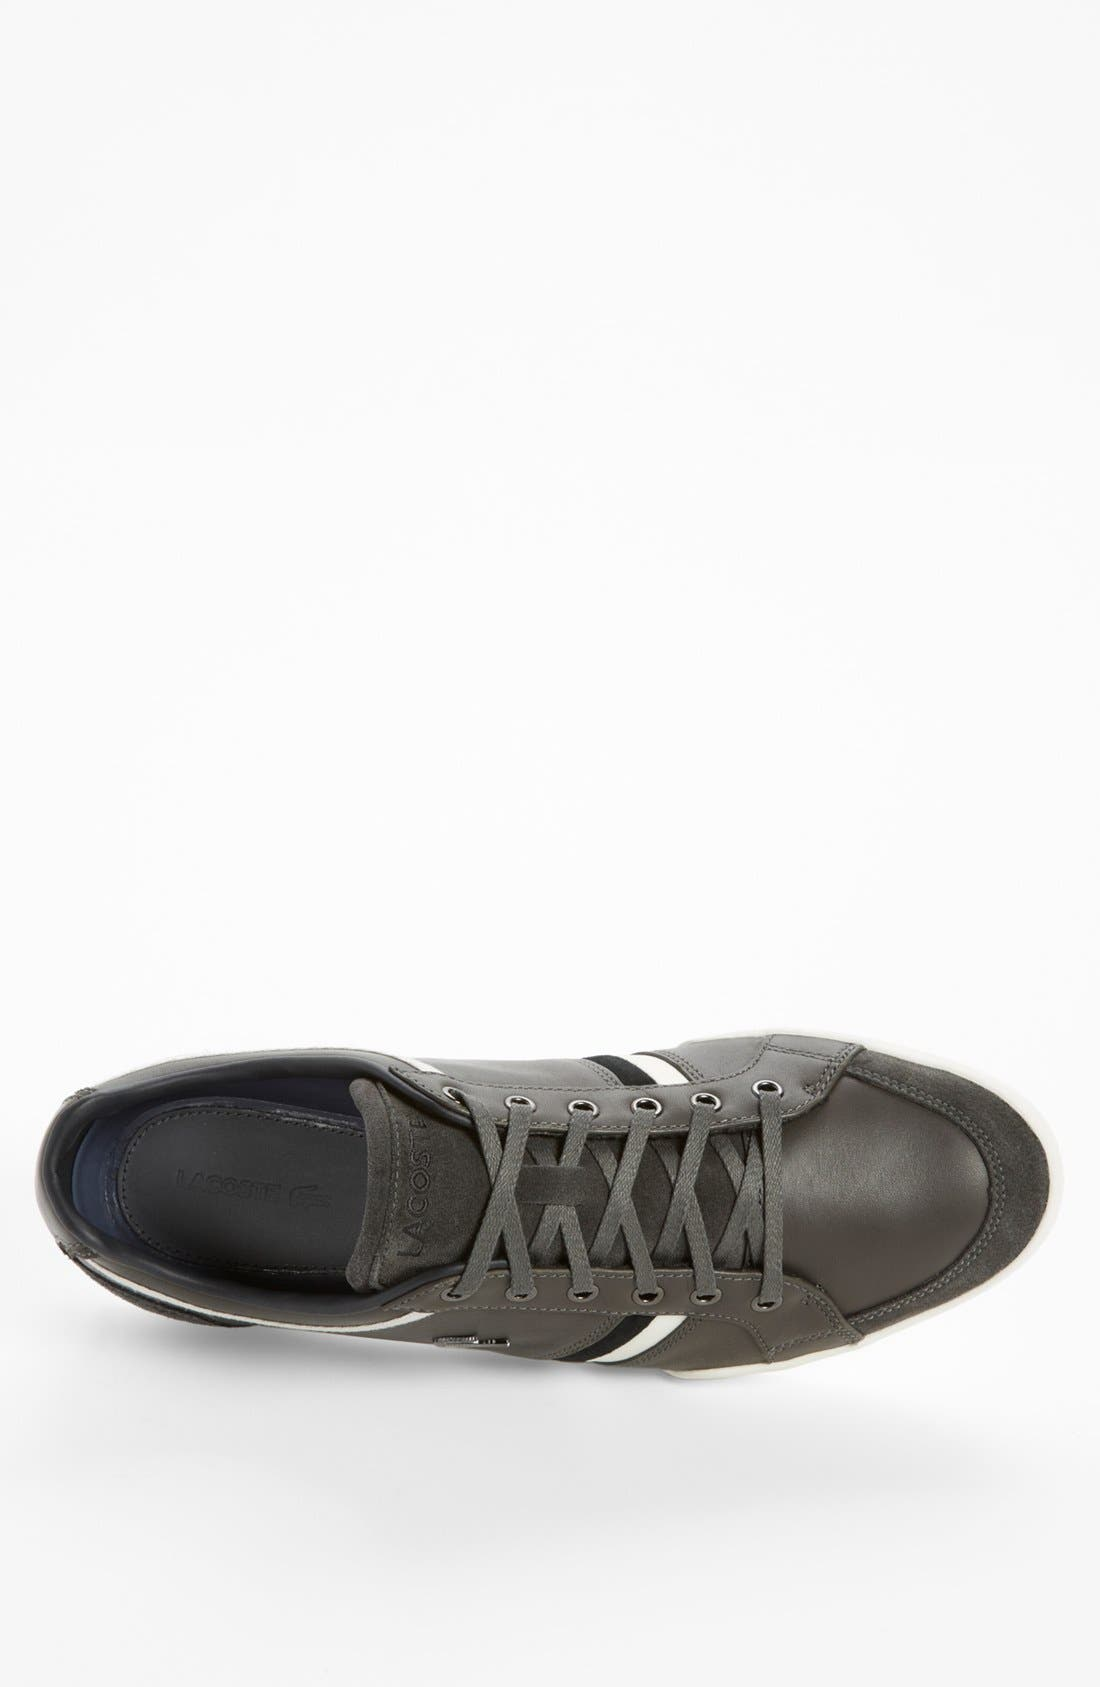 Alternate Image 3  - Lacoste 'Rayford 2' Sneaker (Men)